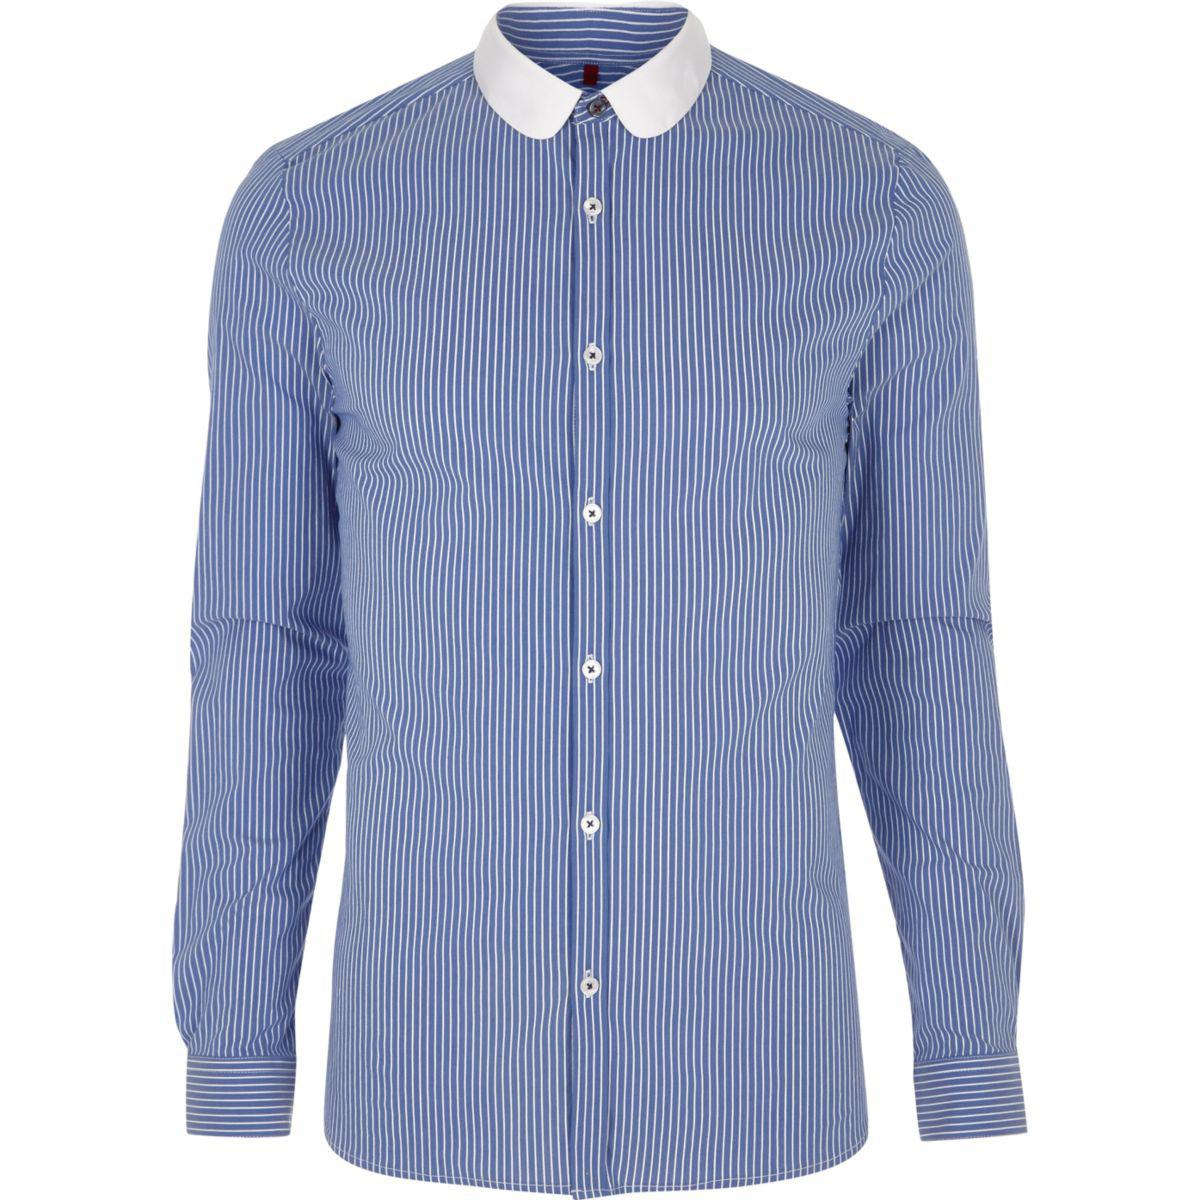 Mens Blue stripe collar bar slim fit shirt River Island Free Shipping For Nice Cheap Sale Supply Cheap Sale Big Discount The Cheapest WHiD33Zdec